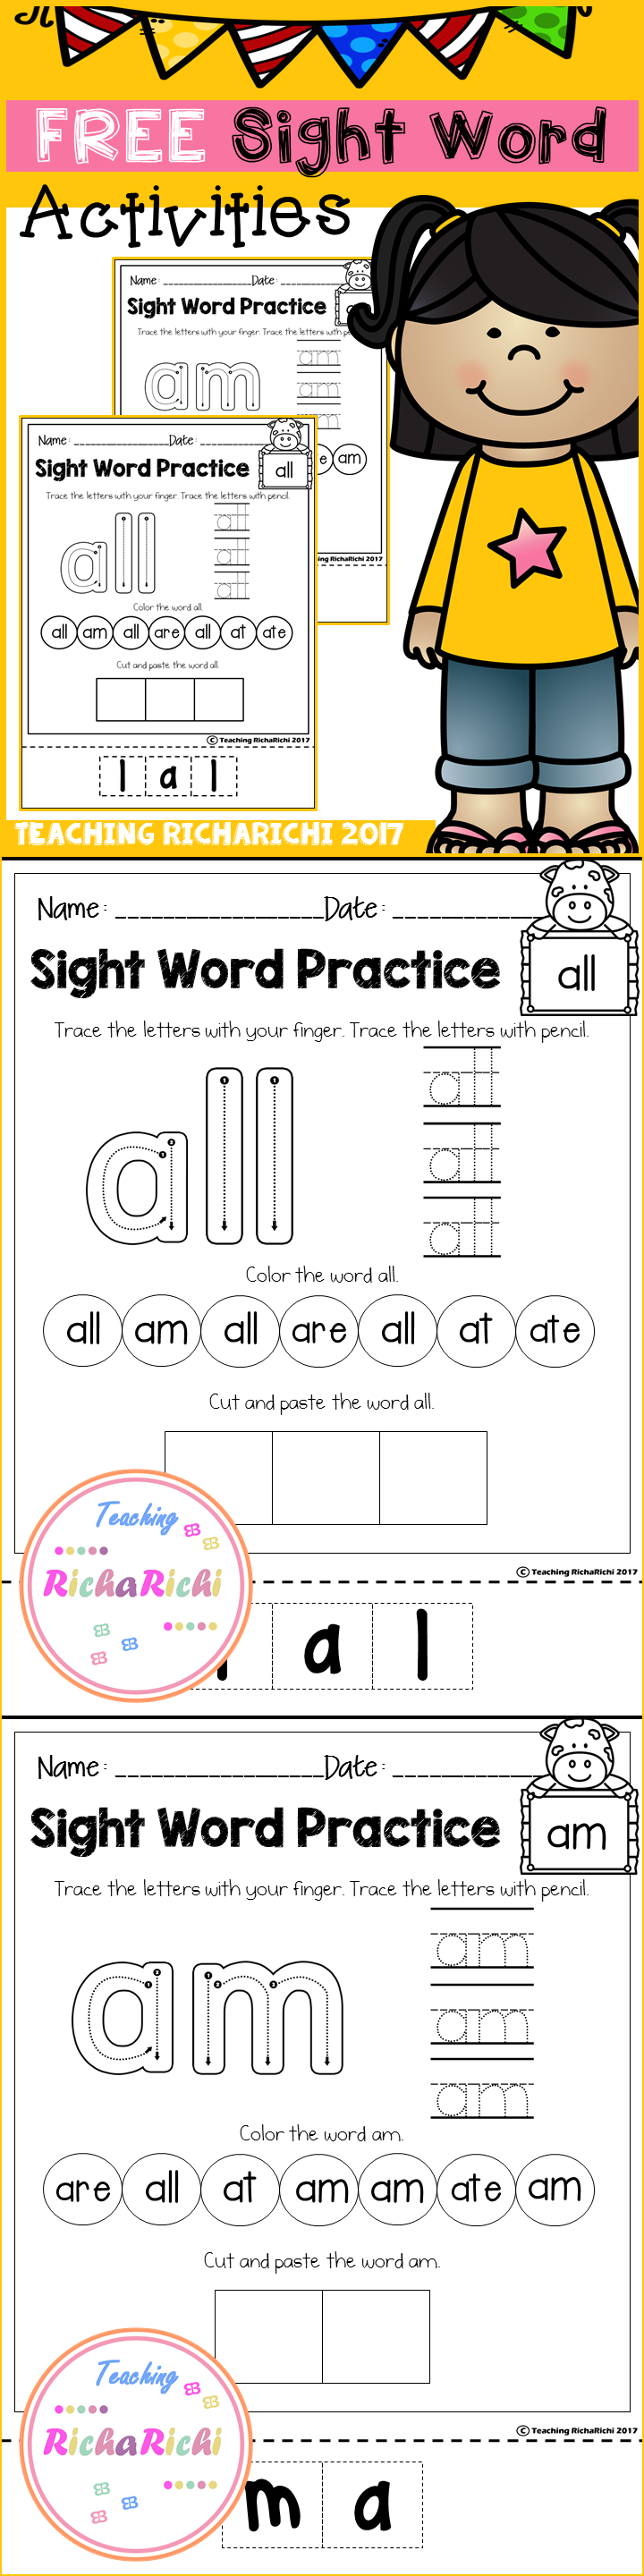 Name The States Worksheet Freebies Free Kindergarten Activities Free Prek Activities  Free Worksheets For 3rd Grade Math Word with States Of Matter Worksheets Freebies Free Kindergarten Activities Free Prek Activities Free First  Grade Activities Math Trigonometry Worksheets Excel